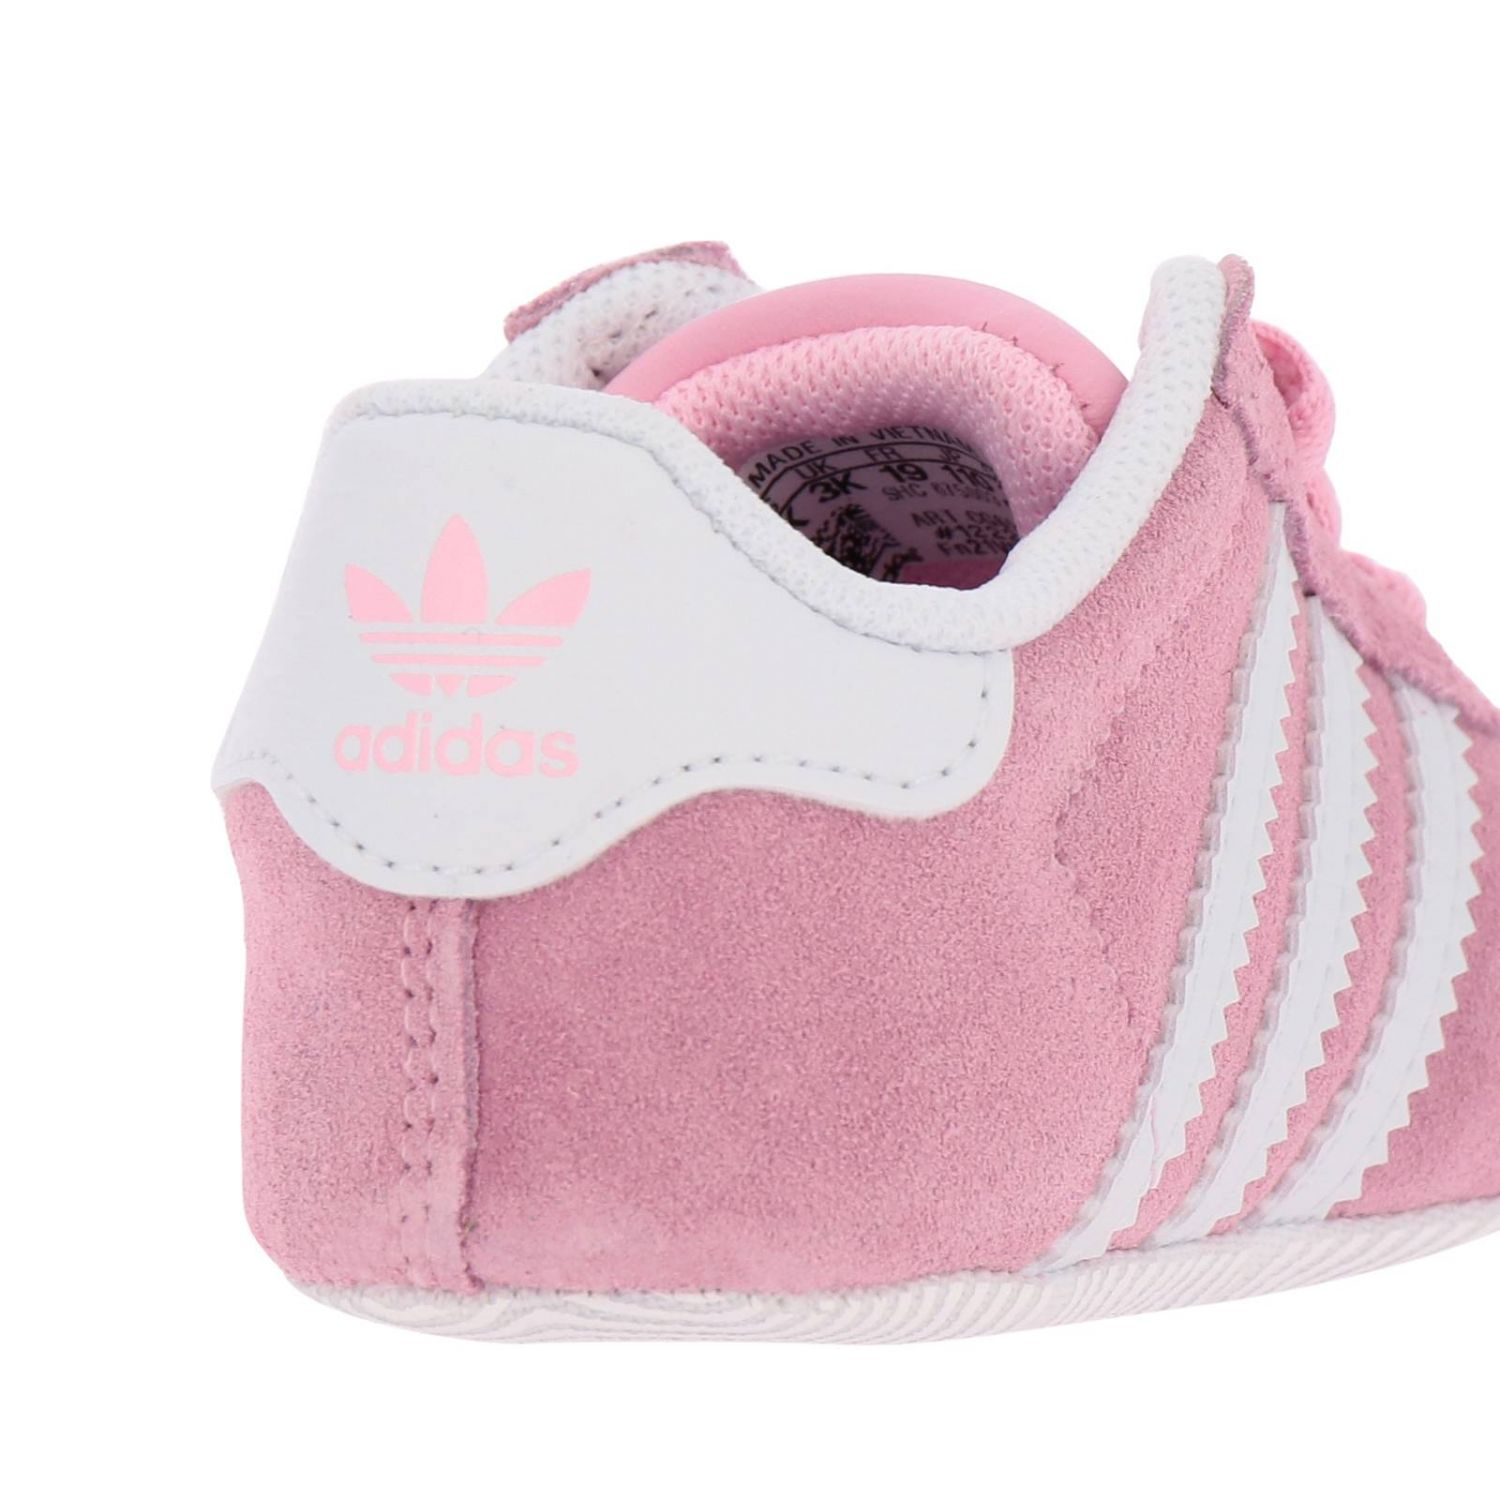 Shoes Adidas Originals: Shoes kids Adidas Originals pink 4